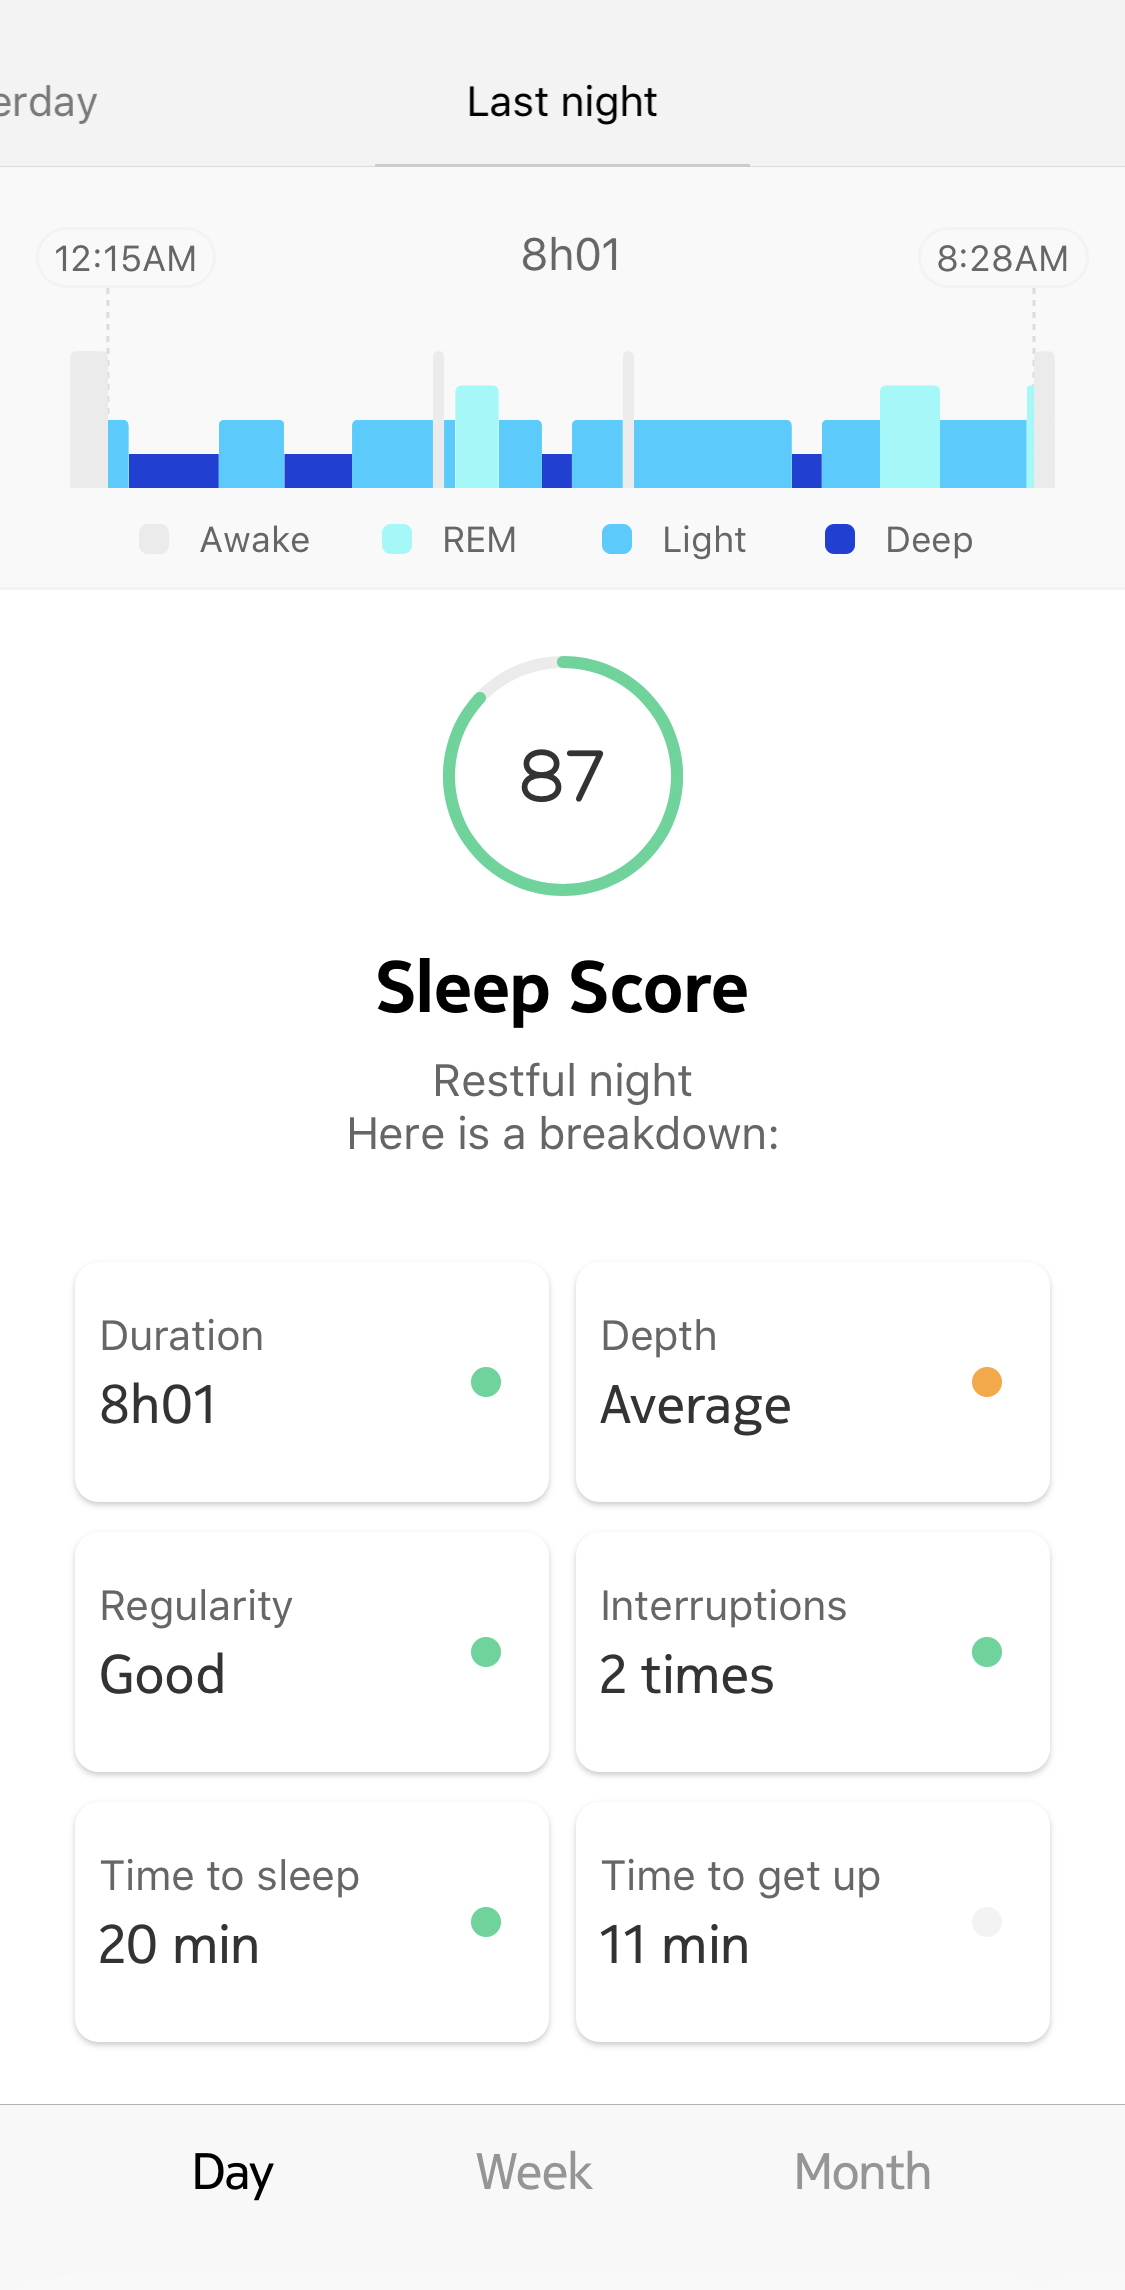 sleep-score-01.png